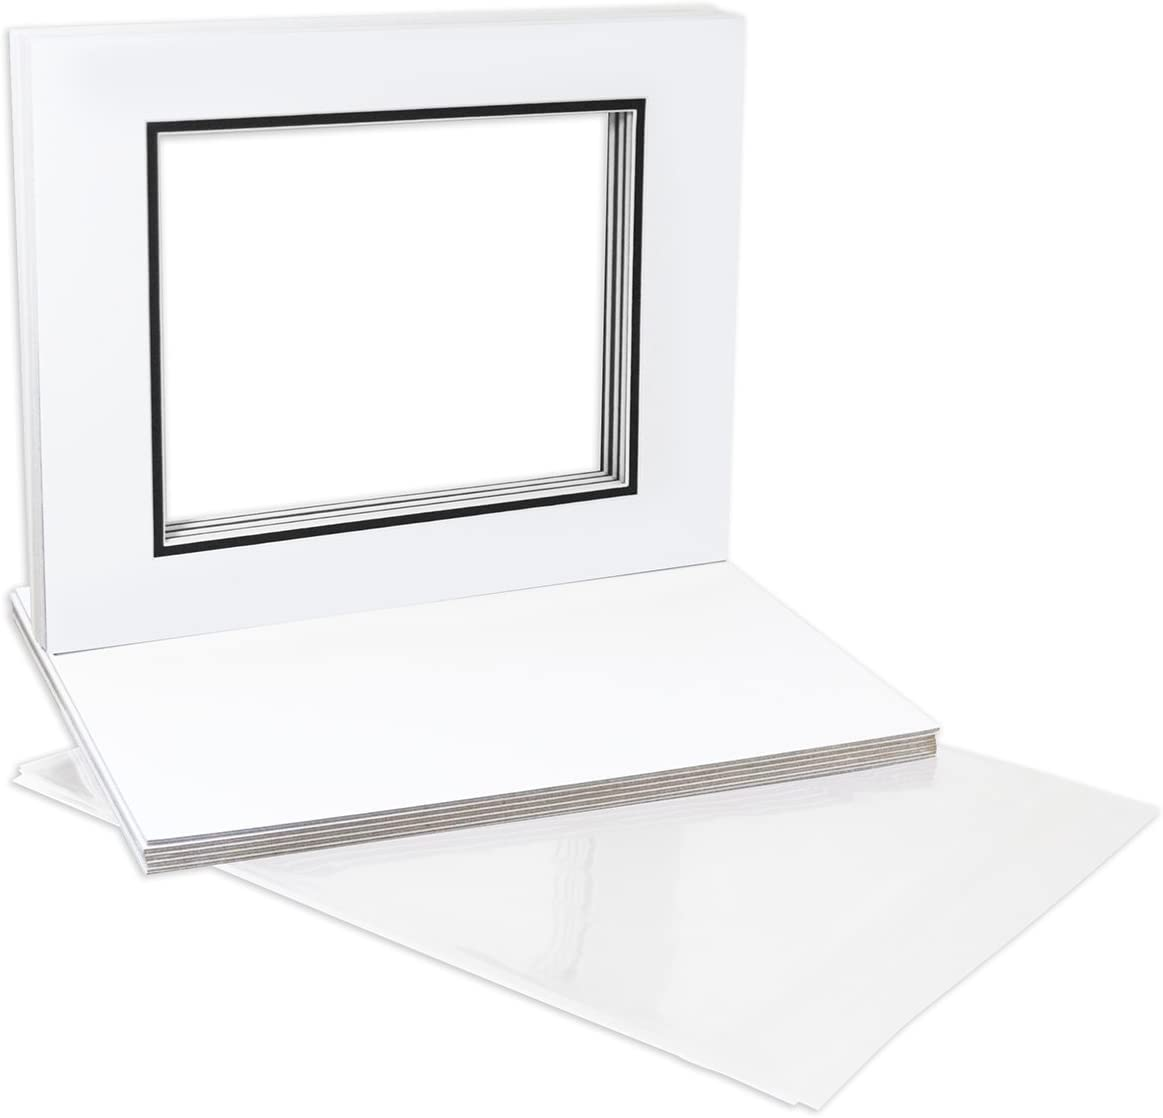 Backing Bags Pack of 10 16x20 White//Black Double Mats Mattes with White Core Bevel Cut for 11x14 Photo